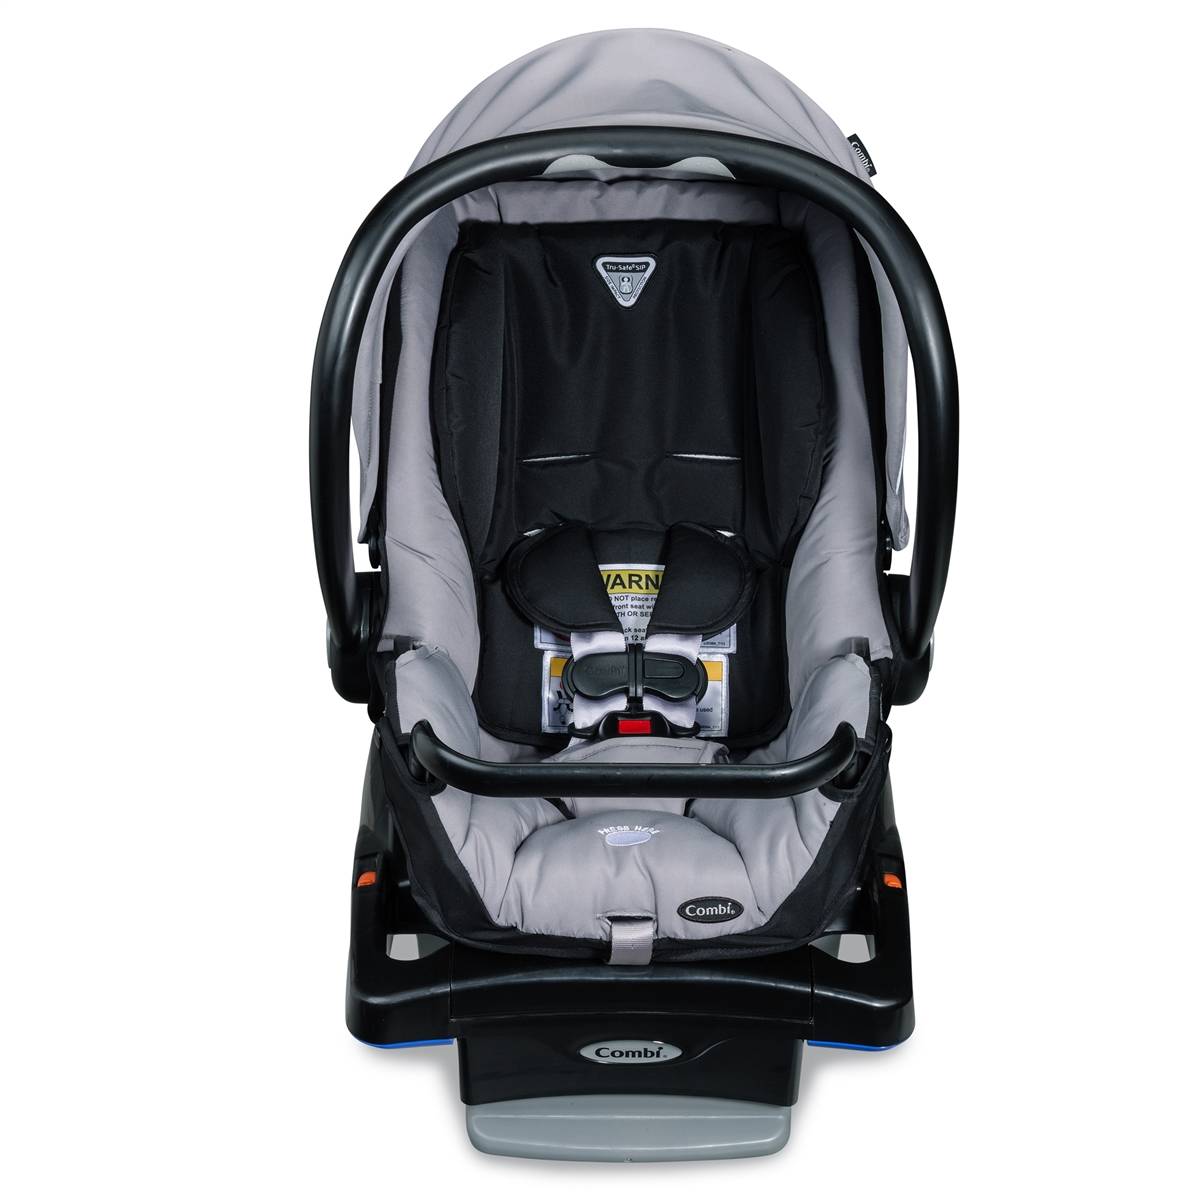 Infant Seat Vs Safety Seat Shuttle Infant Car Seat